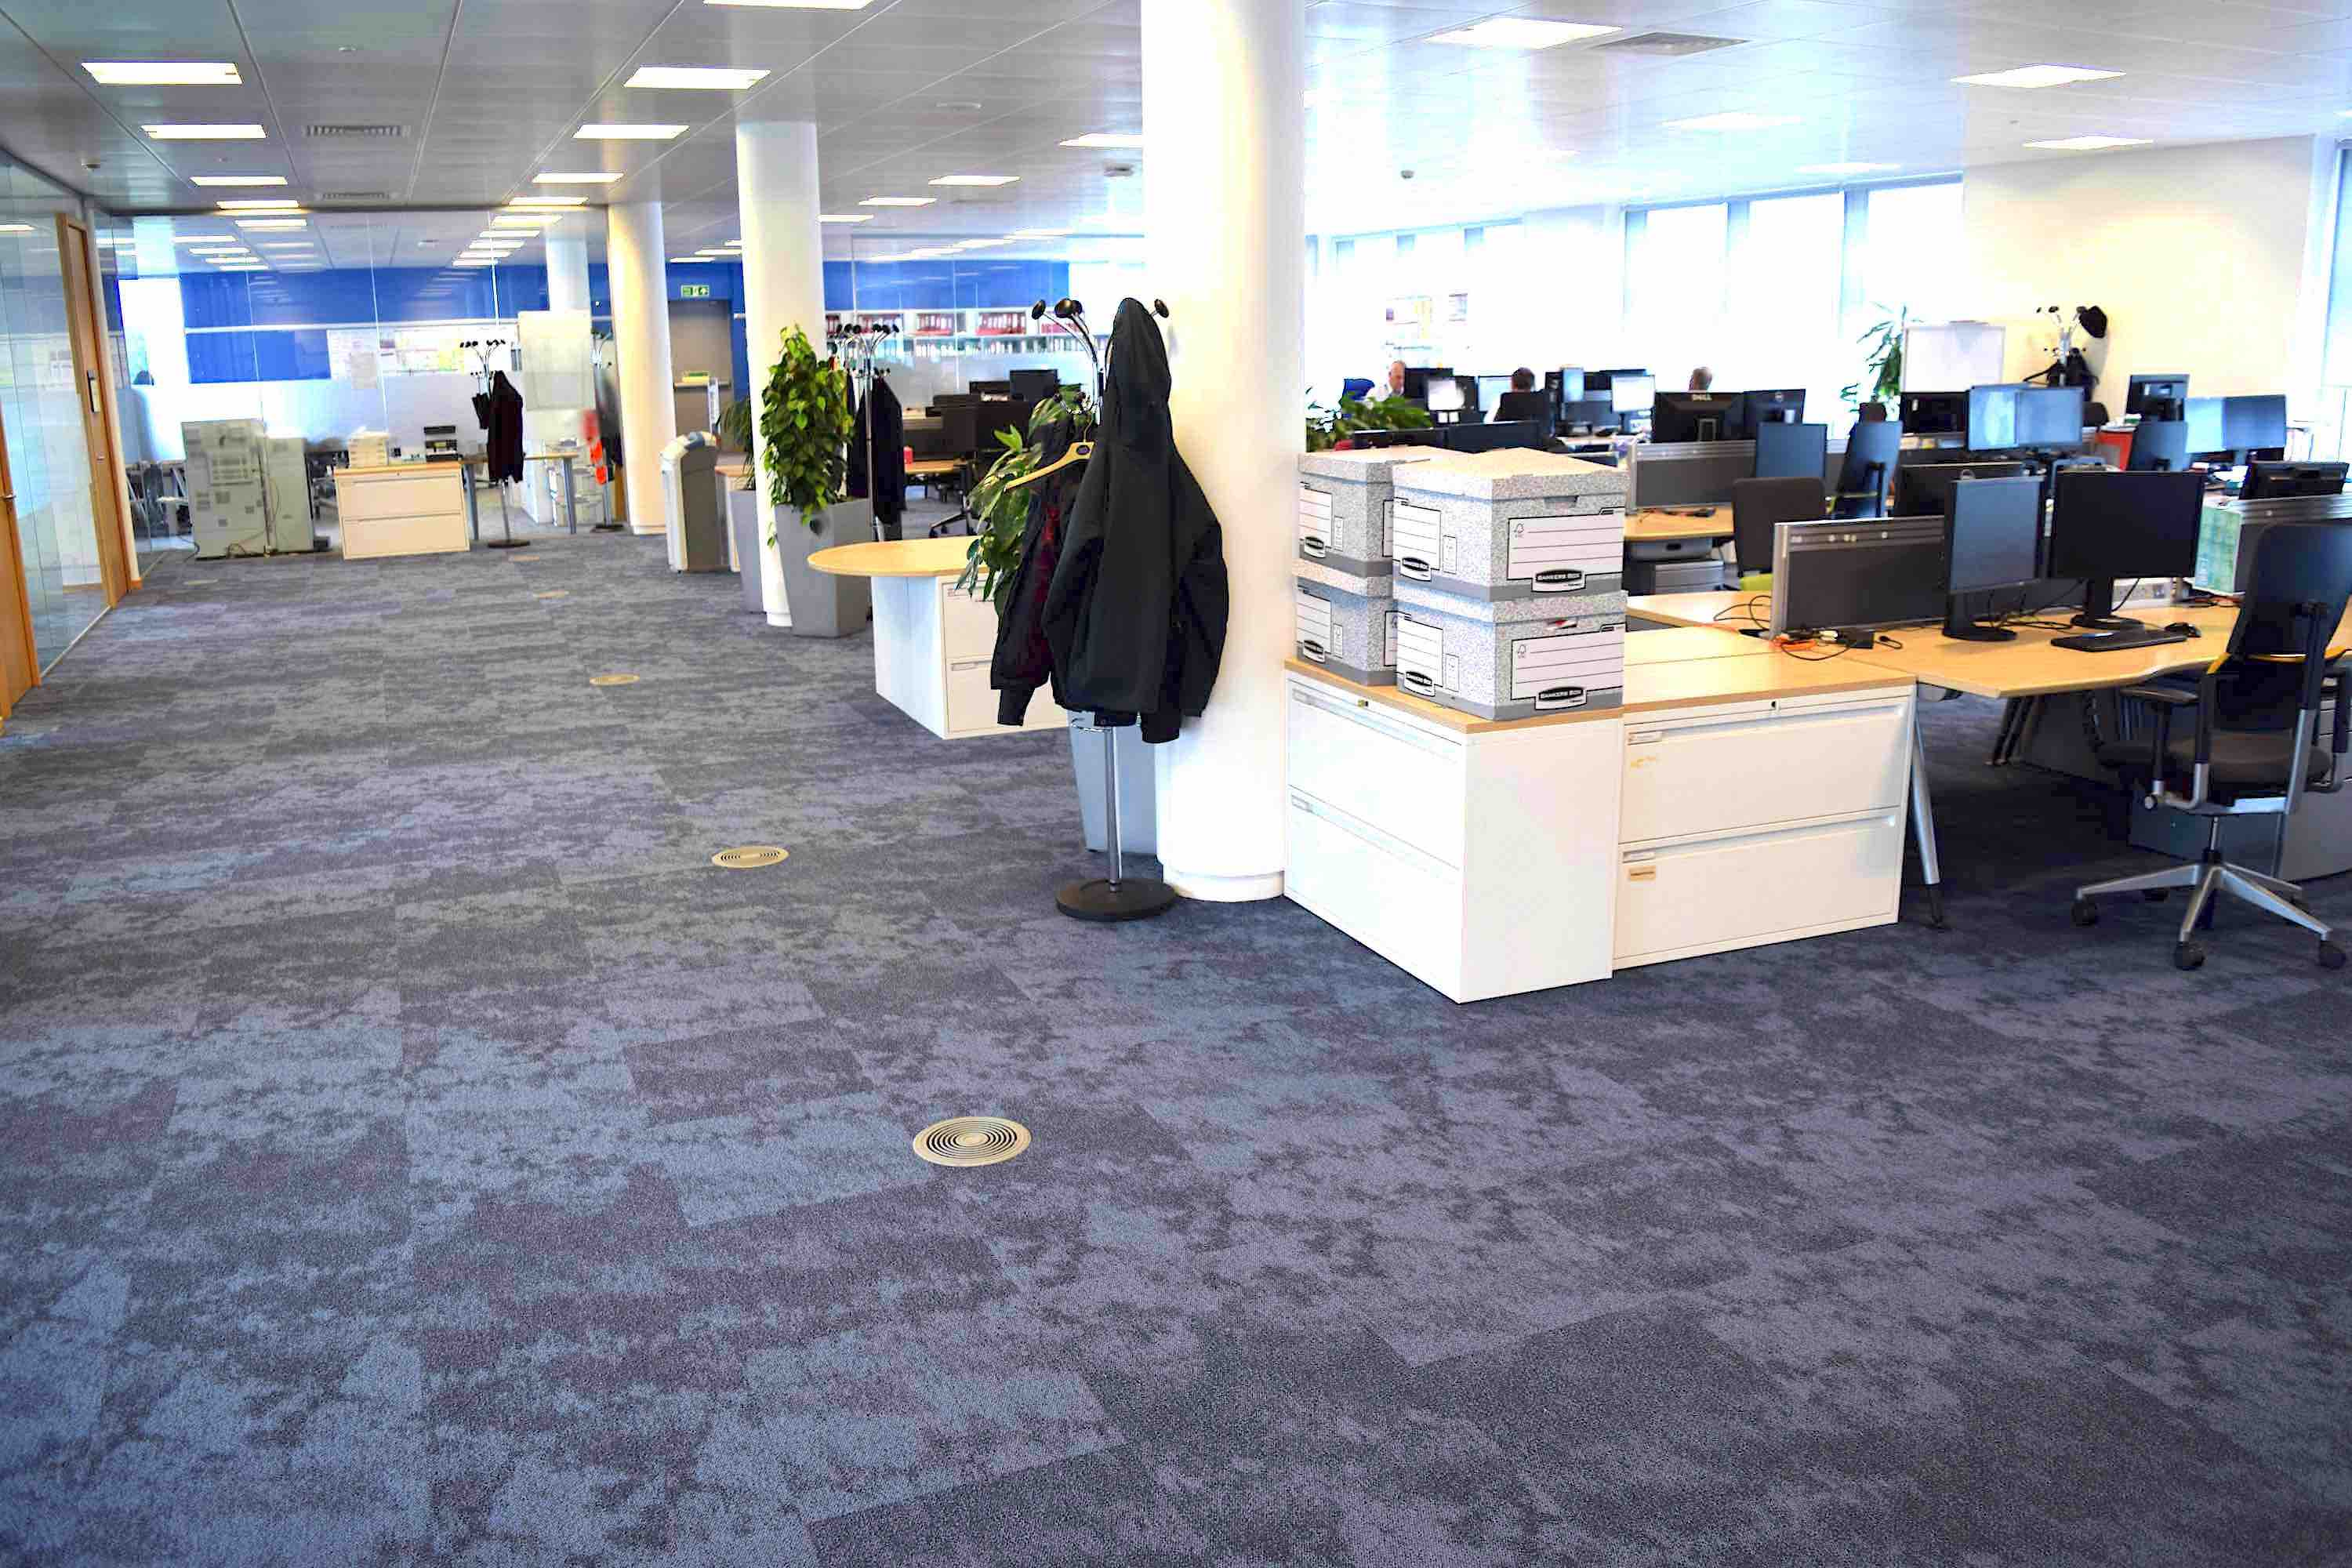 BP, North Sea Office, Aberdeen Case Study